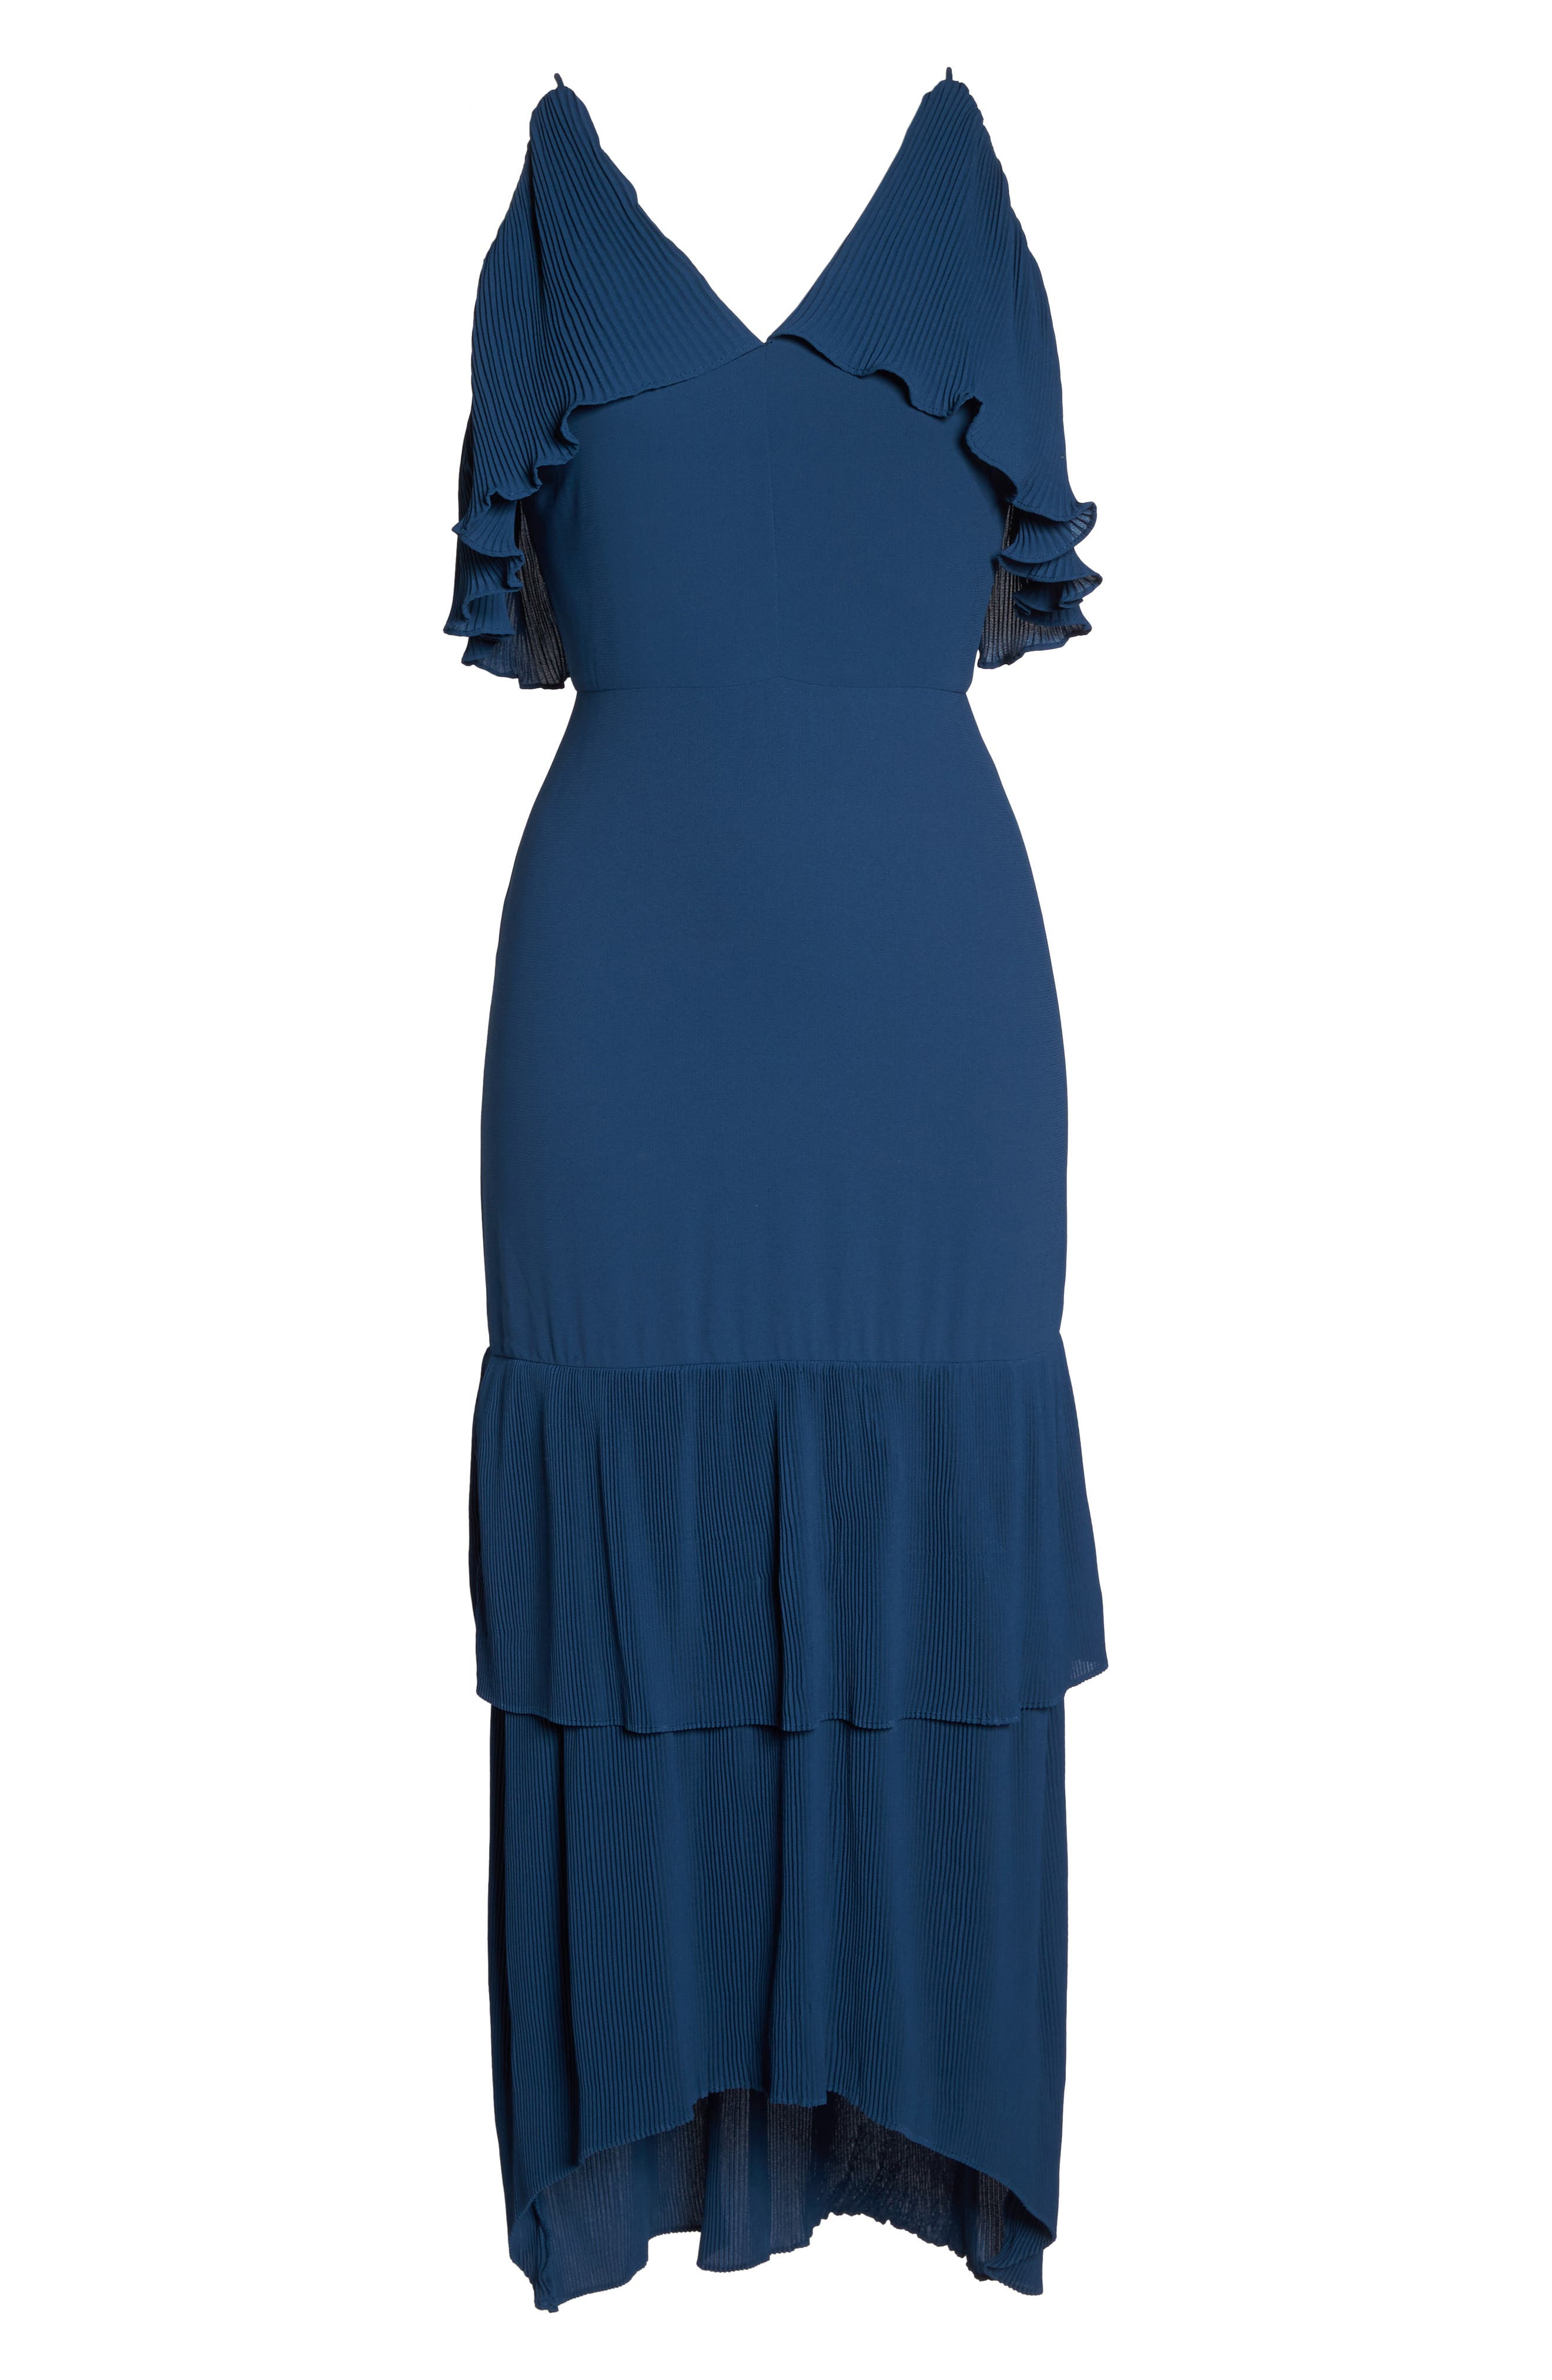 Kate Pleated Ruffle Midi Dress,                             Alternate thumbnail 6, color,                             415